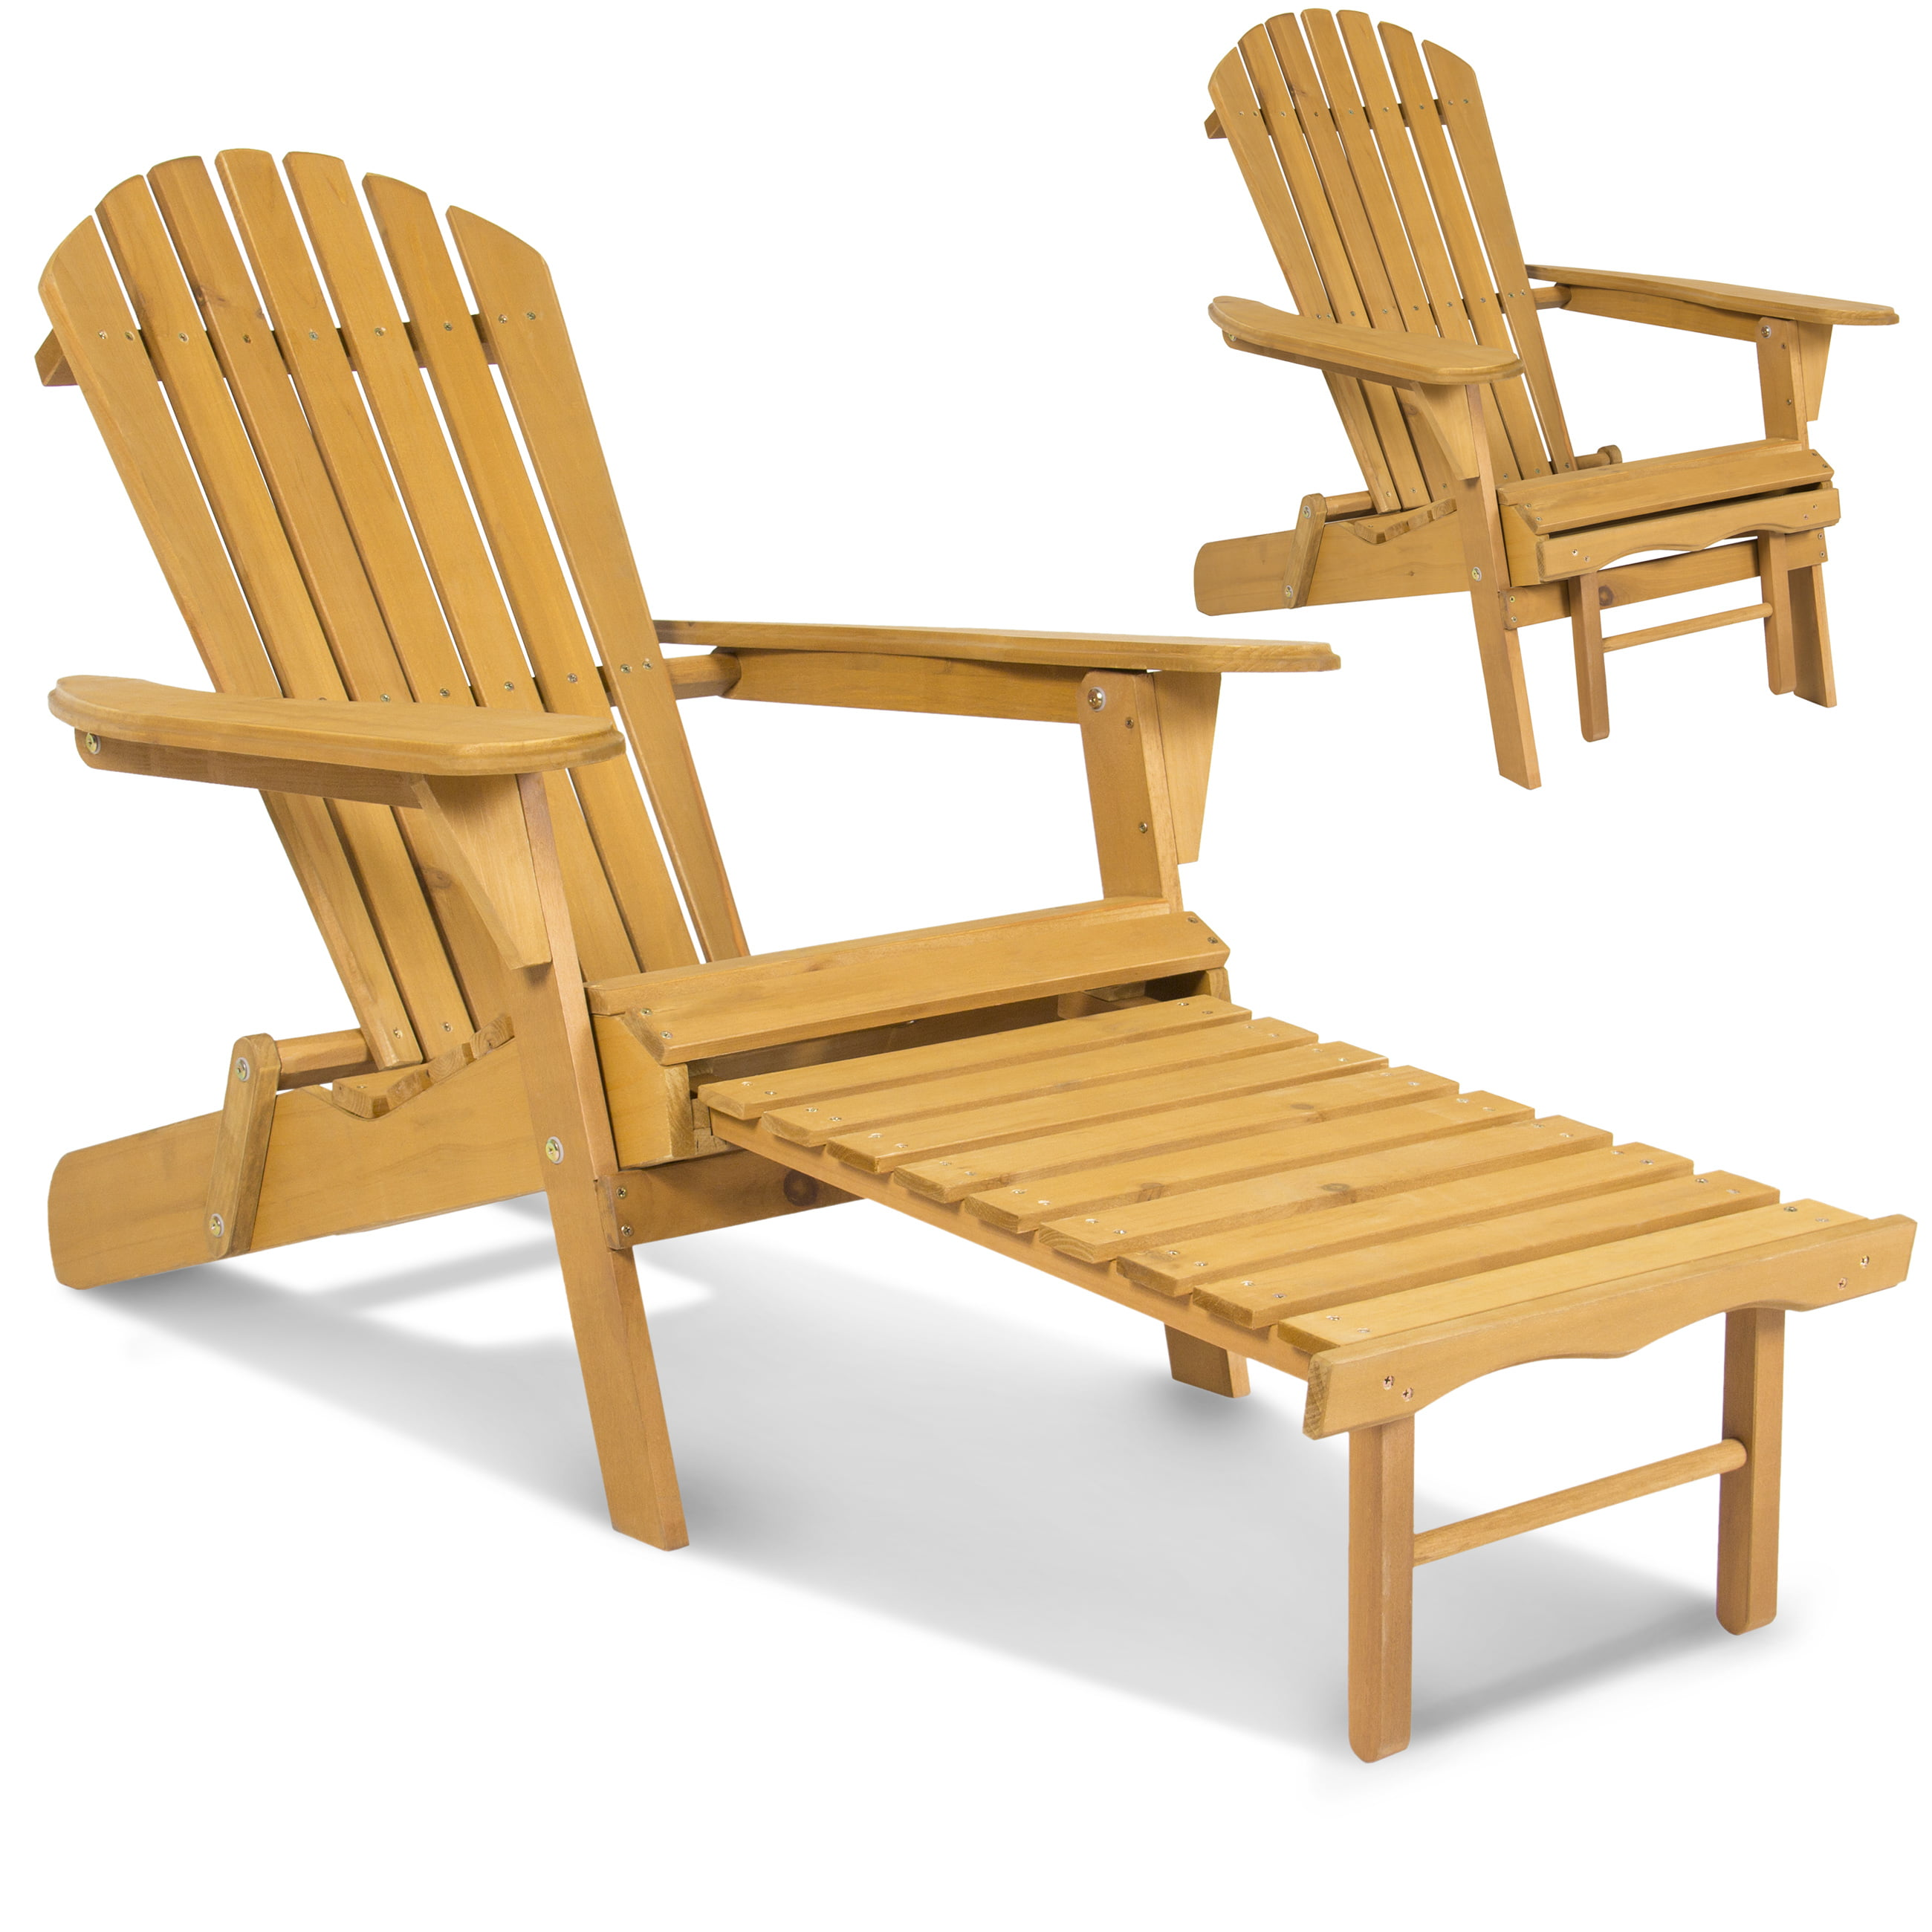 Best Choice Products Foldable Wood Adirondack Chair W Pull Out